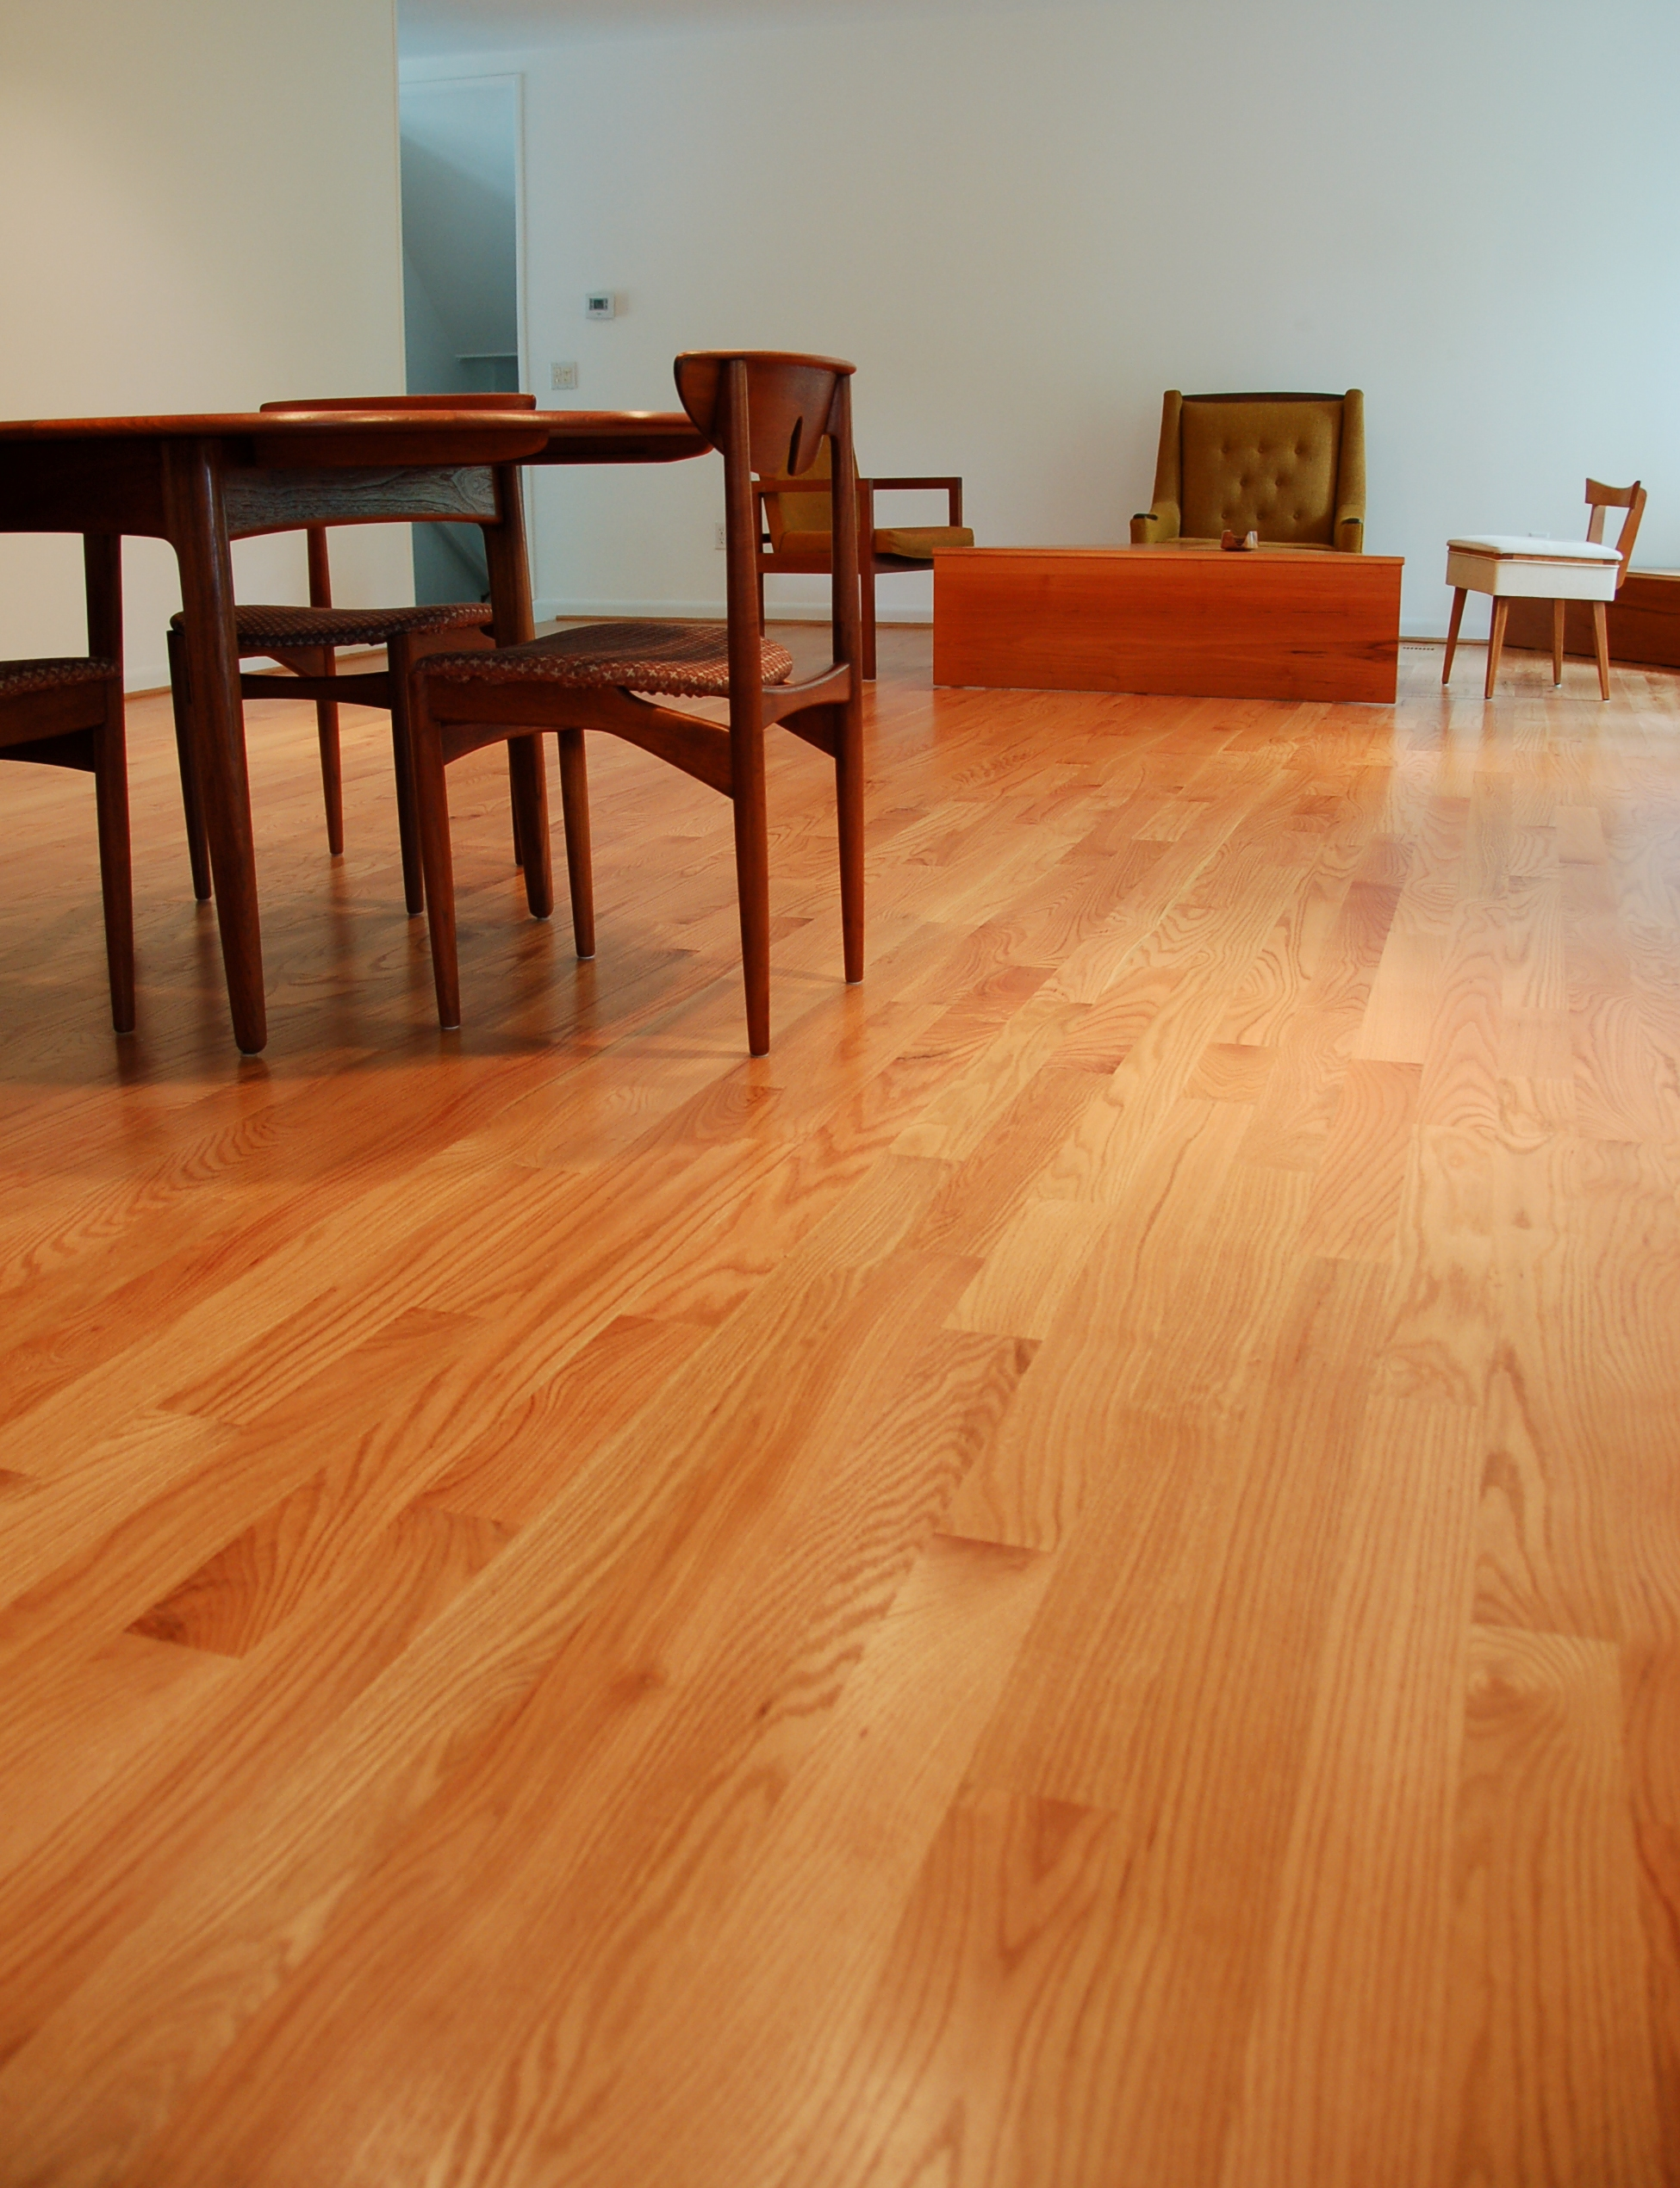 Flooring Hardwood due to the availability of home improvement instructions online while researching information for how to stain a hardwood floor i came across many Cj Hardwood Floors Home